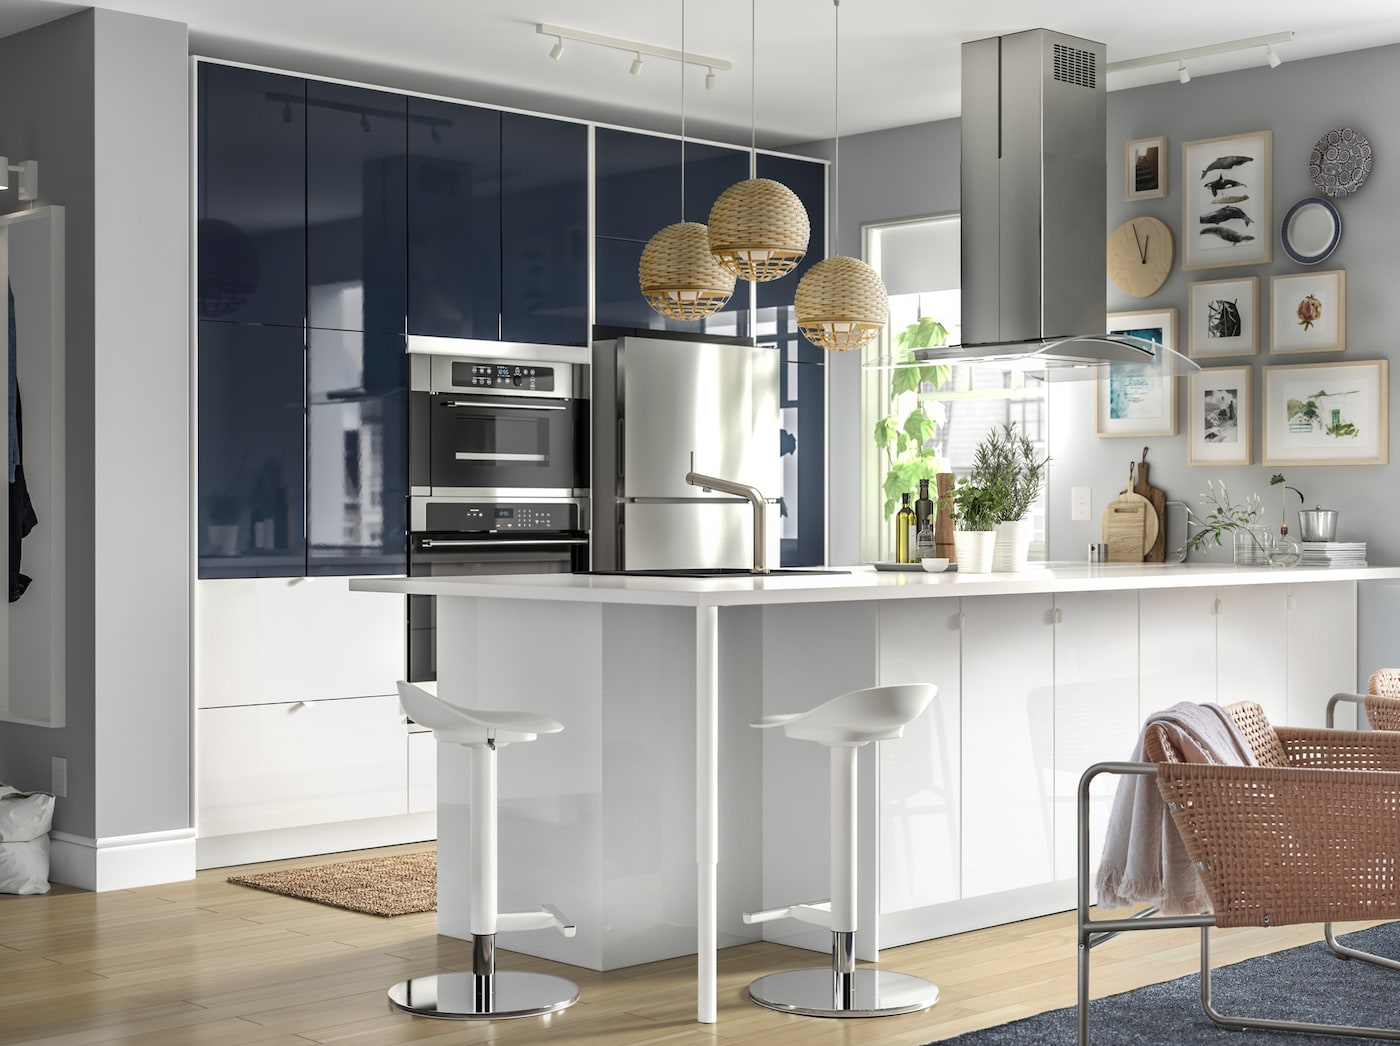 Be bold in the kitchen - IKEA